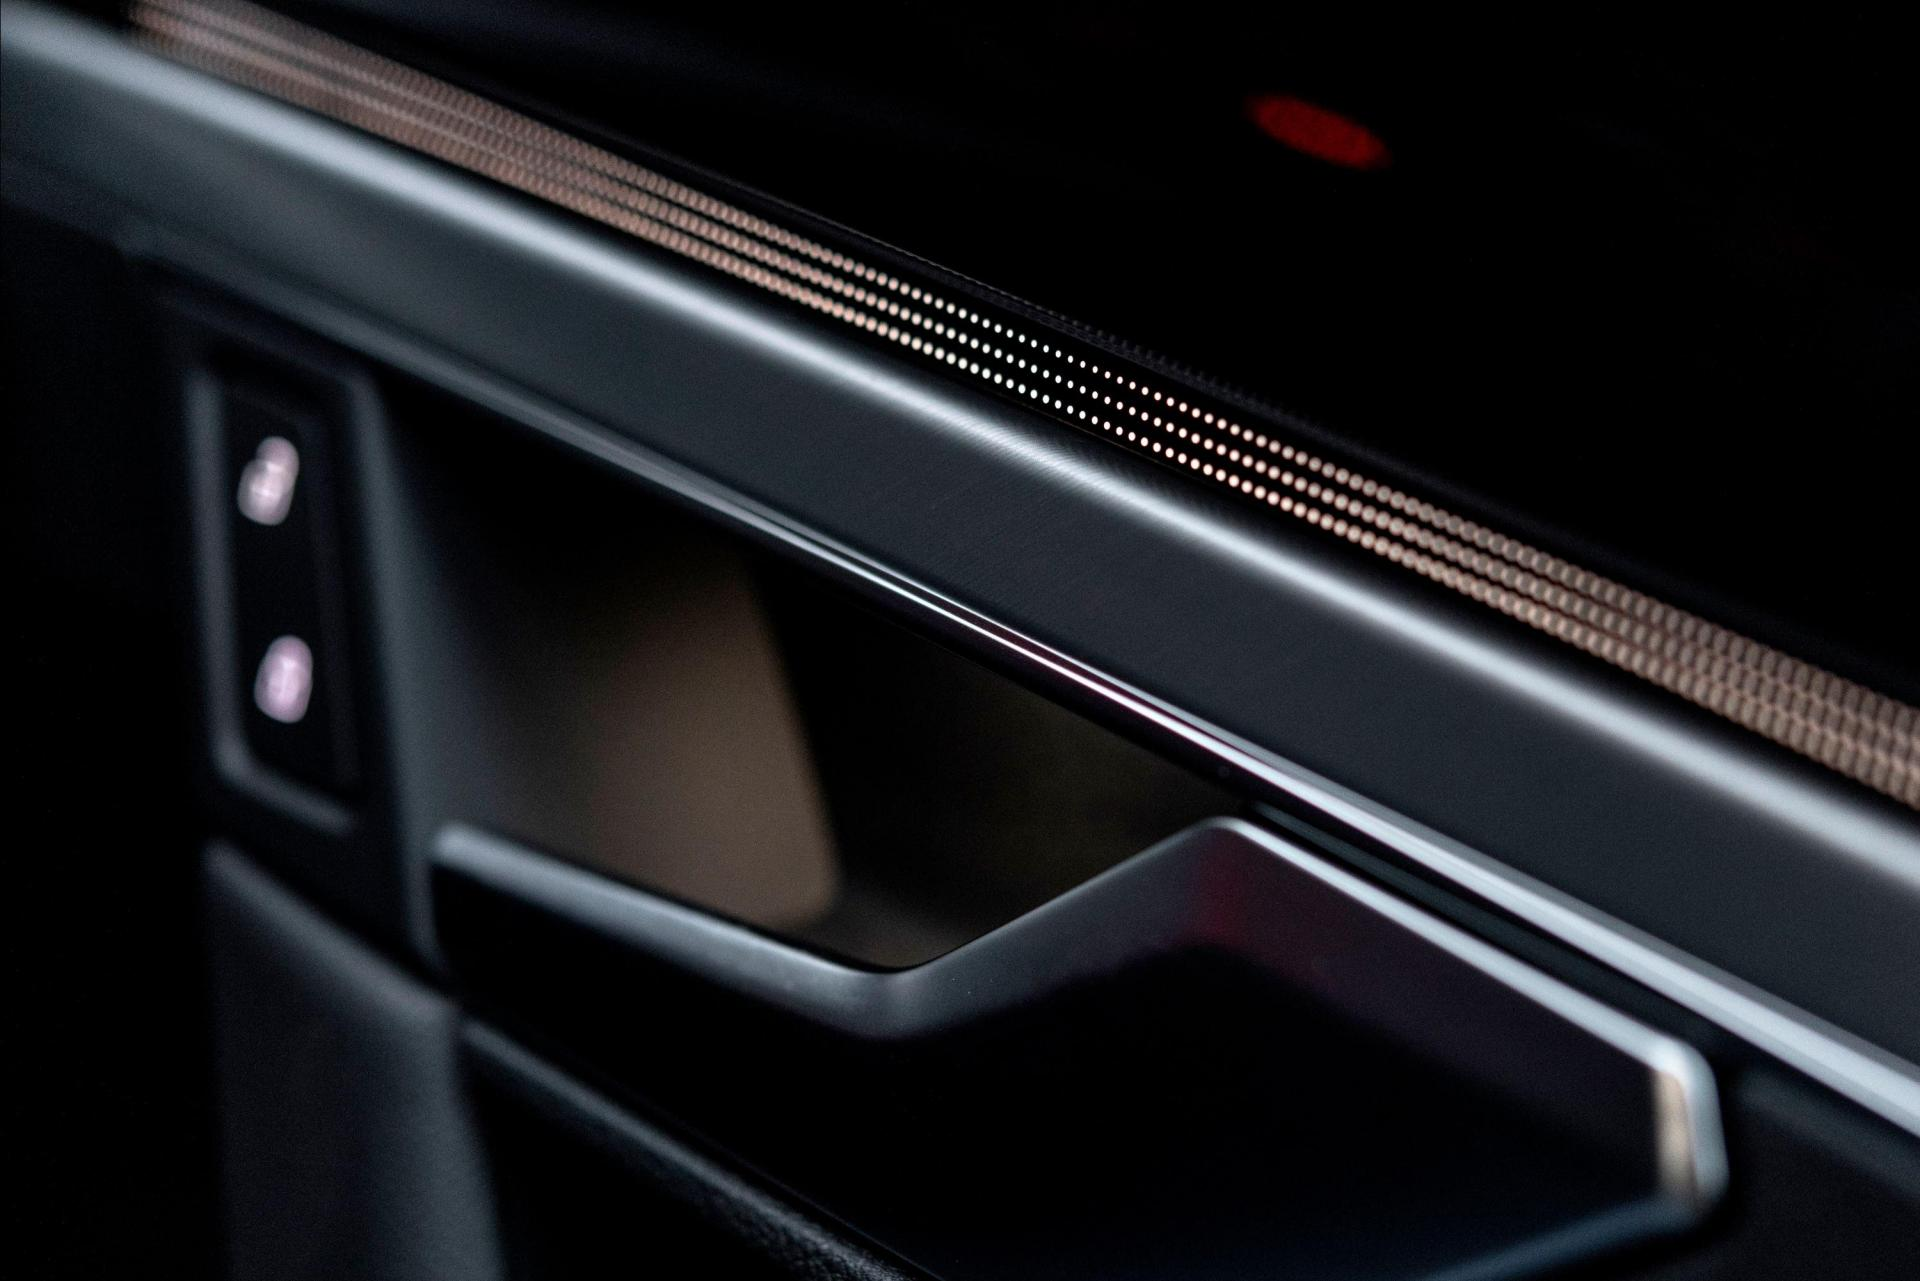 All of the Touareg's interior elements are finished to a high standard.